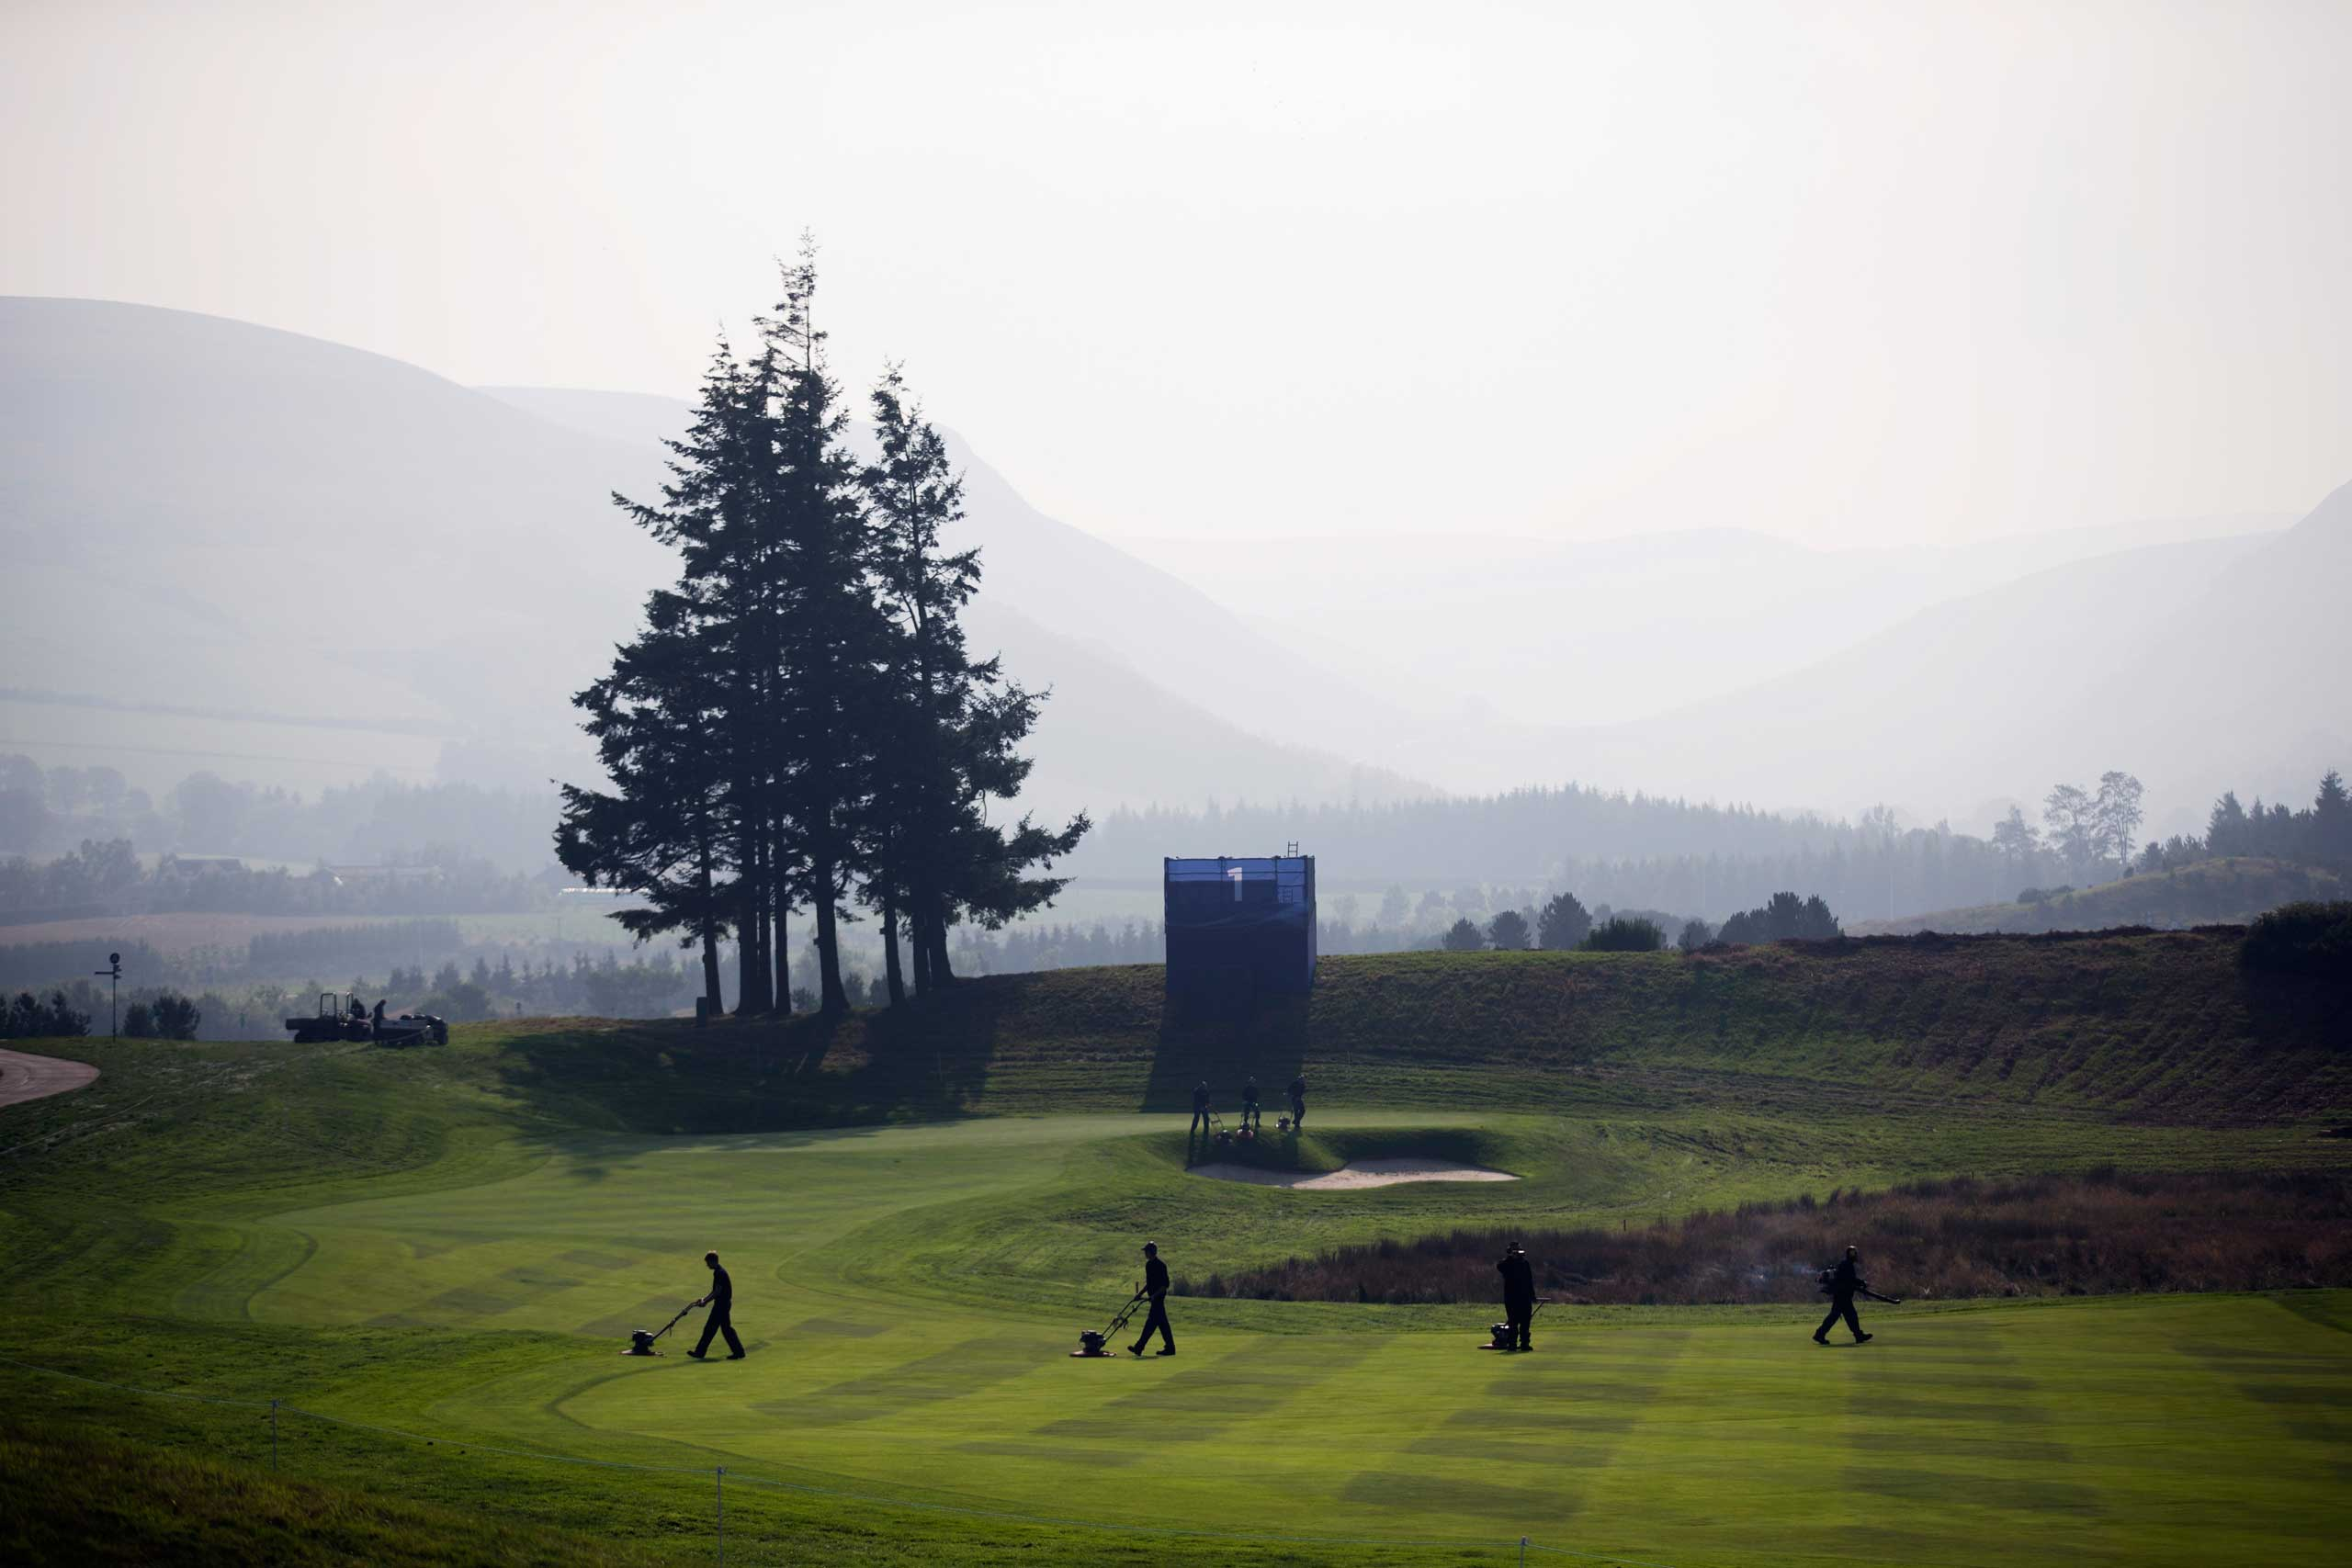 Sept. 21, 2014.  Greenkeepers work on the 1st fairway in preparation for the start of the Ryder Cup golf tournament in Gleneagles, Scotland.